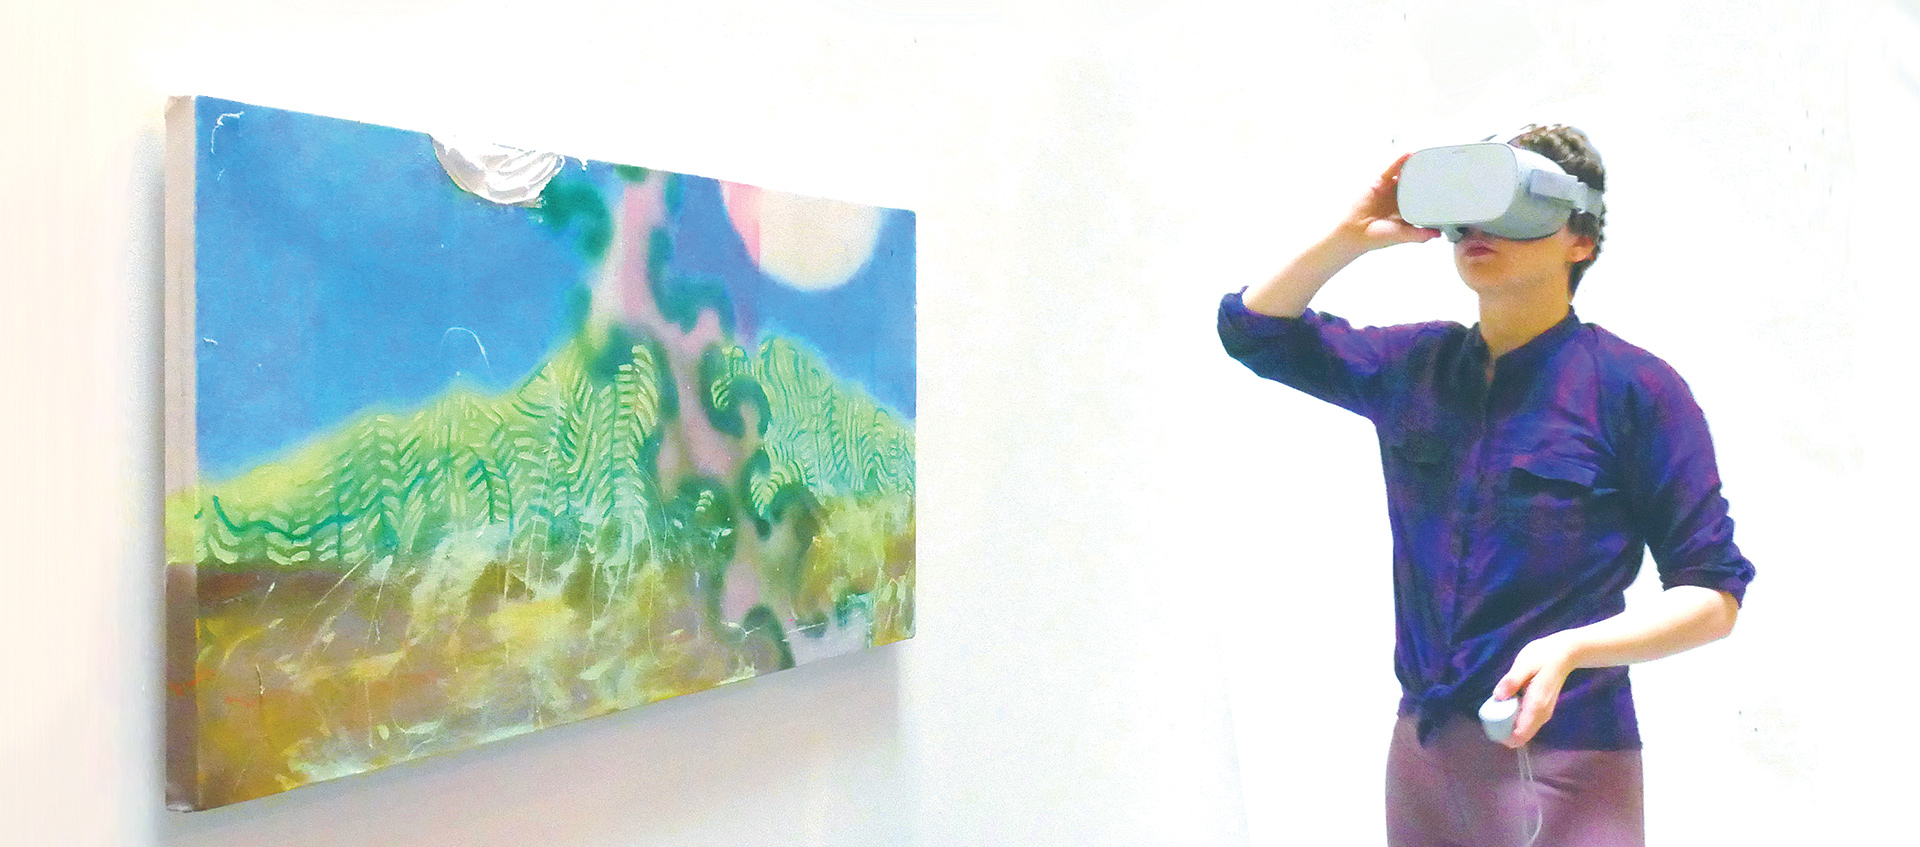 Person wearing virtual reality goggles next to colorful painting